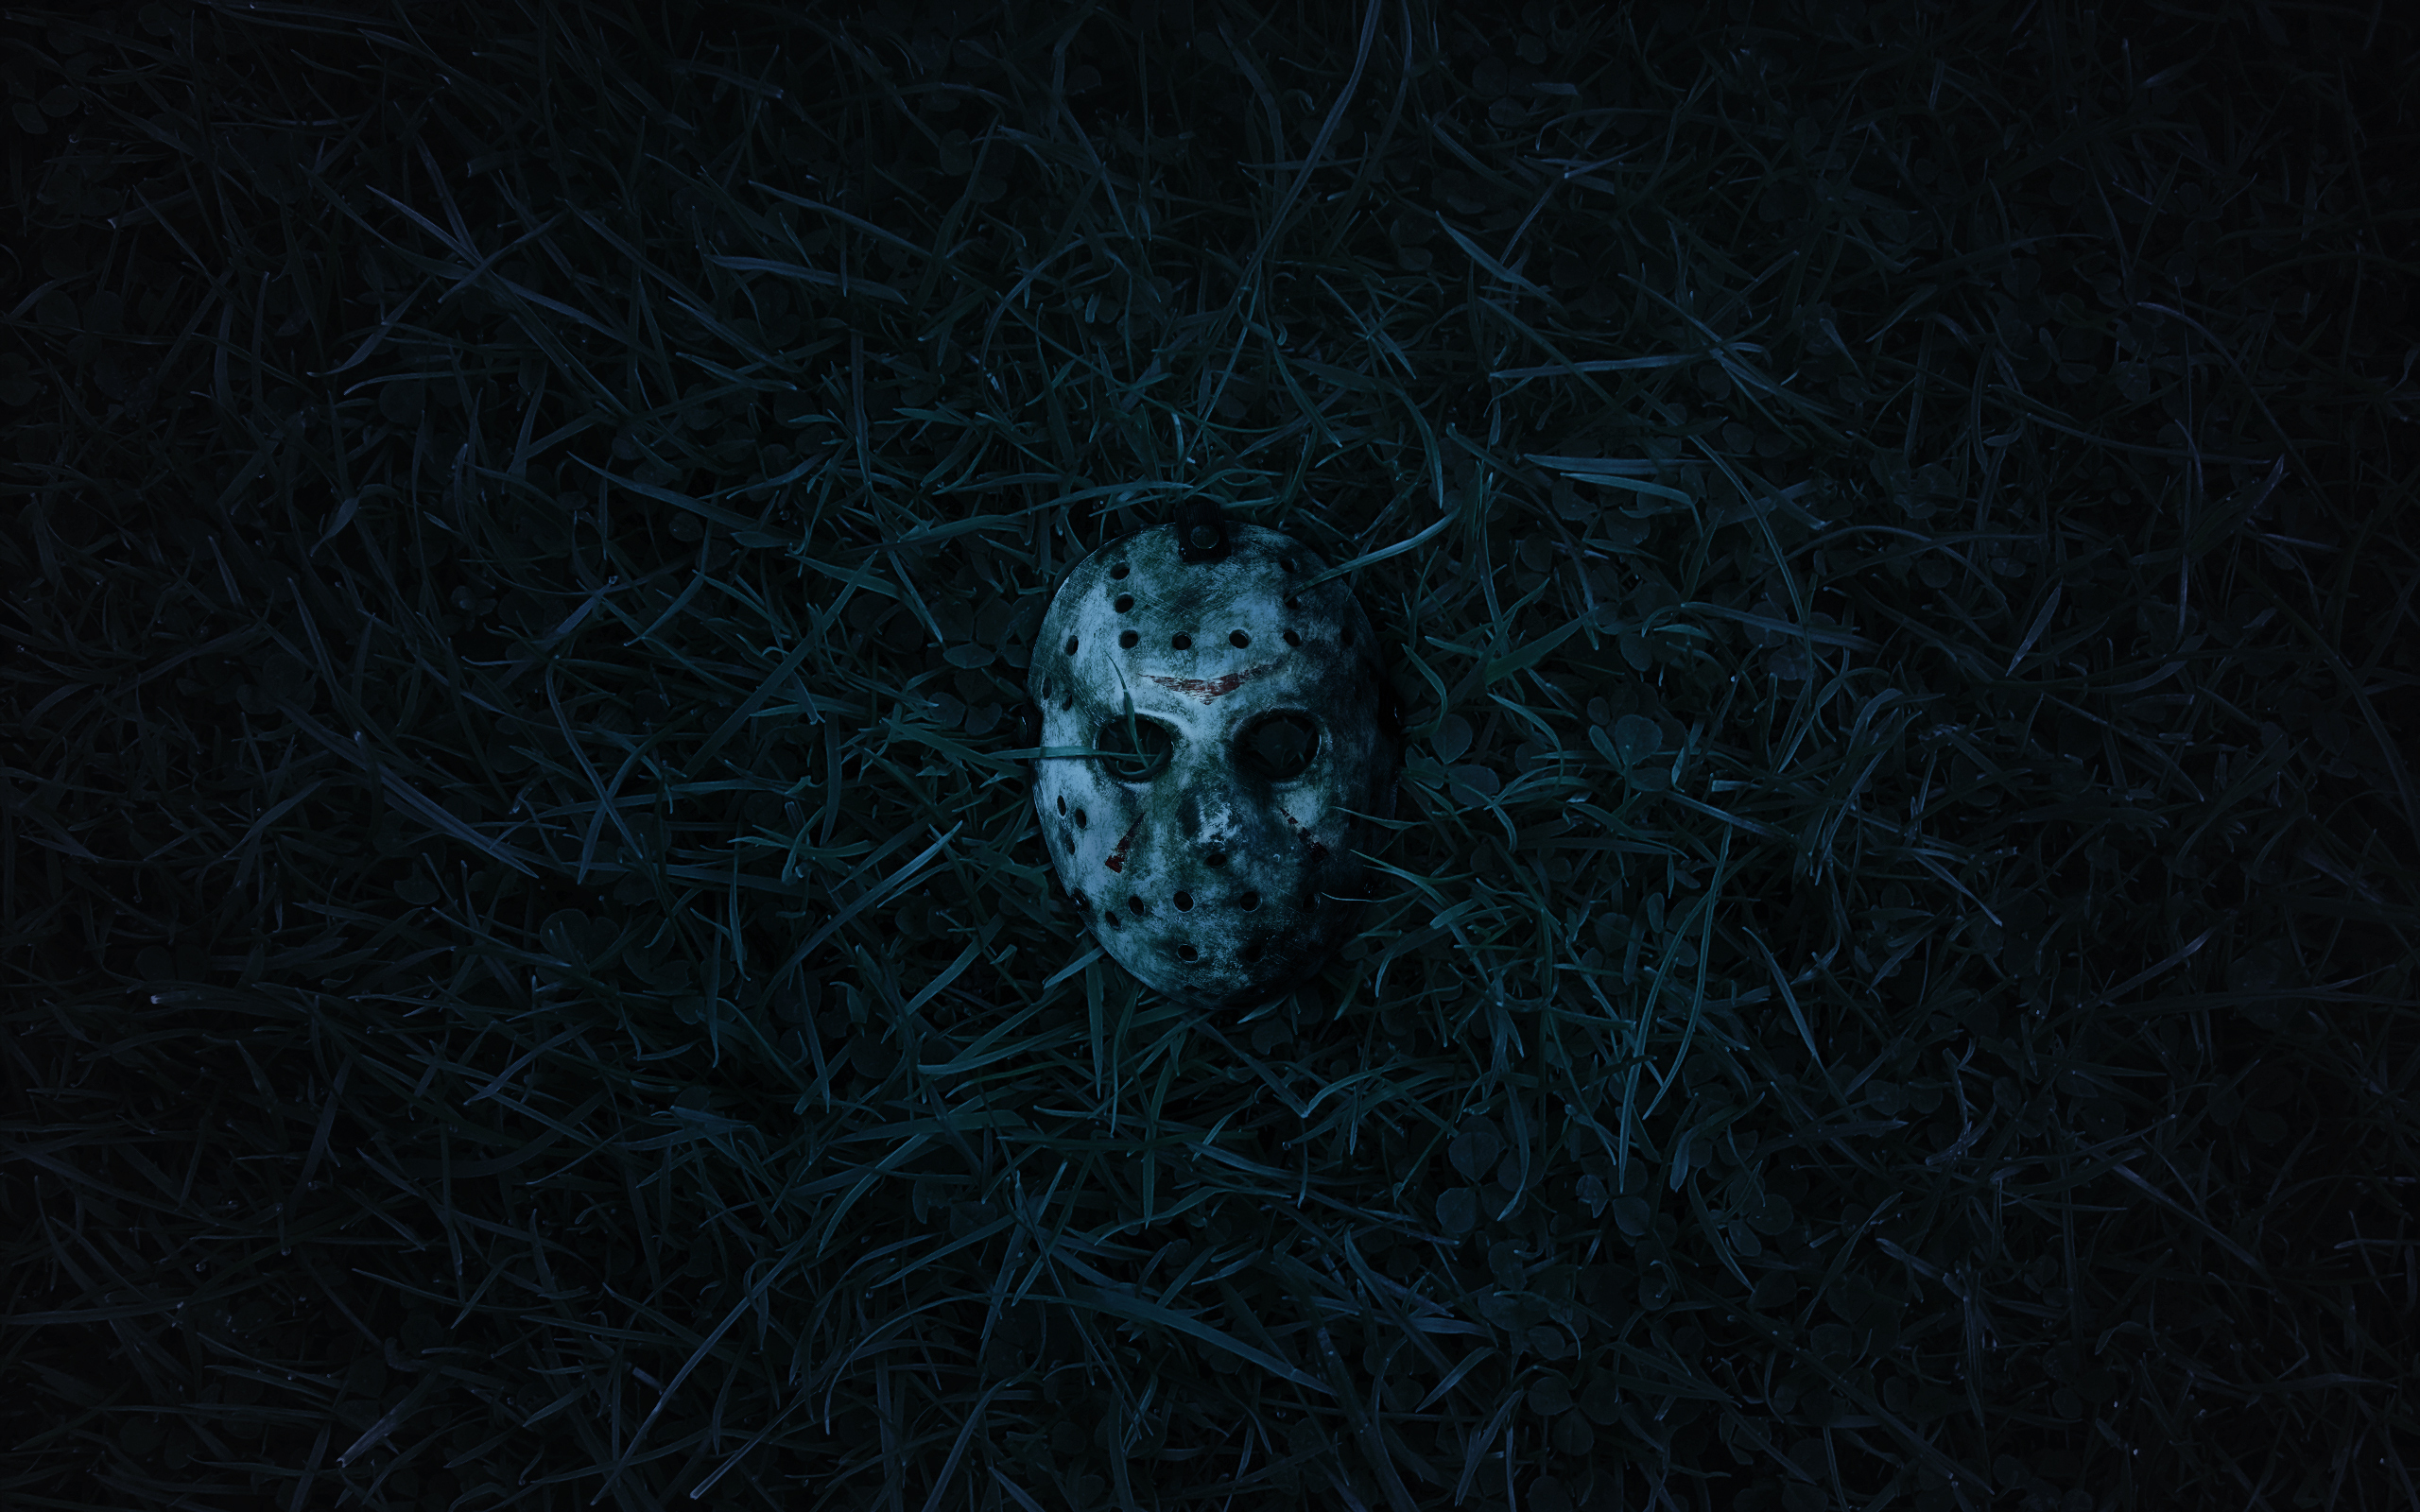 11 Friday The 13th (2009) HD Wallpapers | Backgrounds - Wallpaper